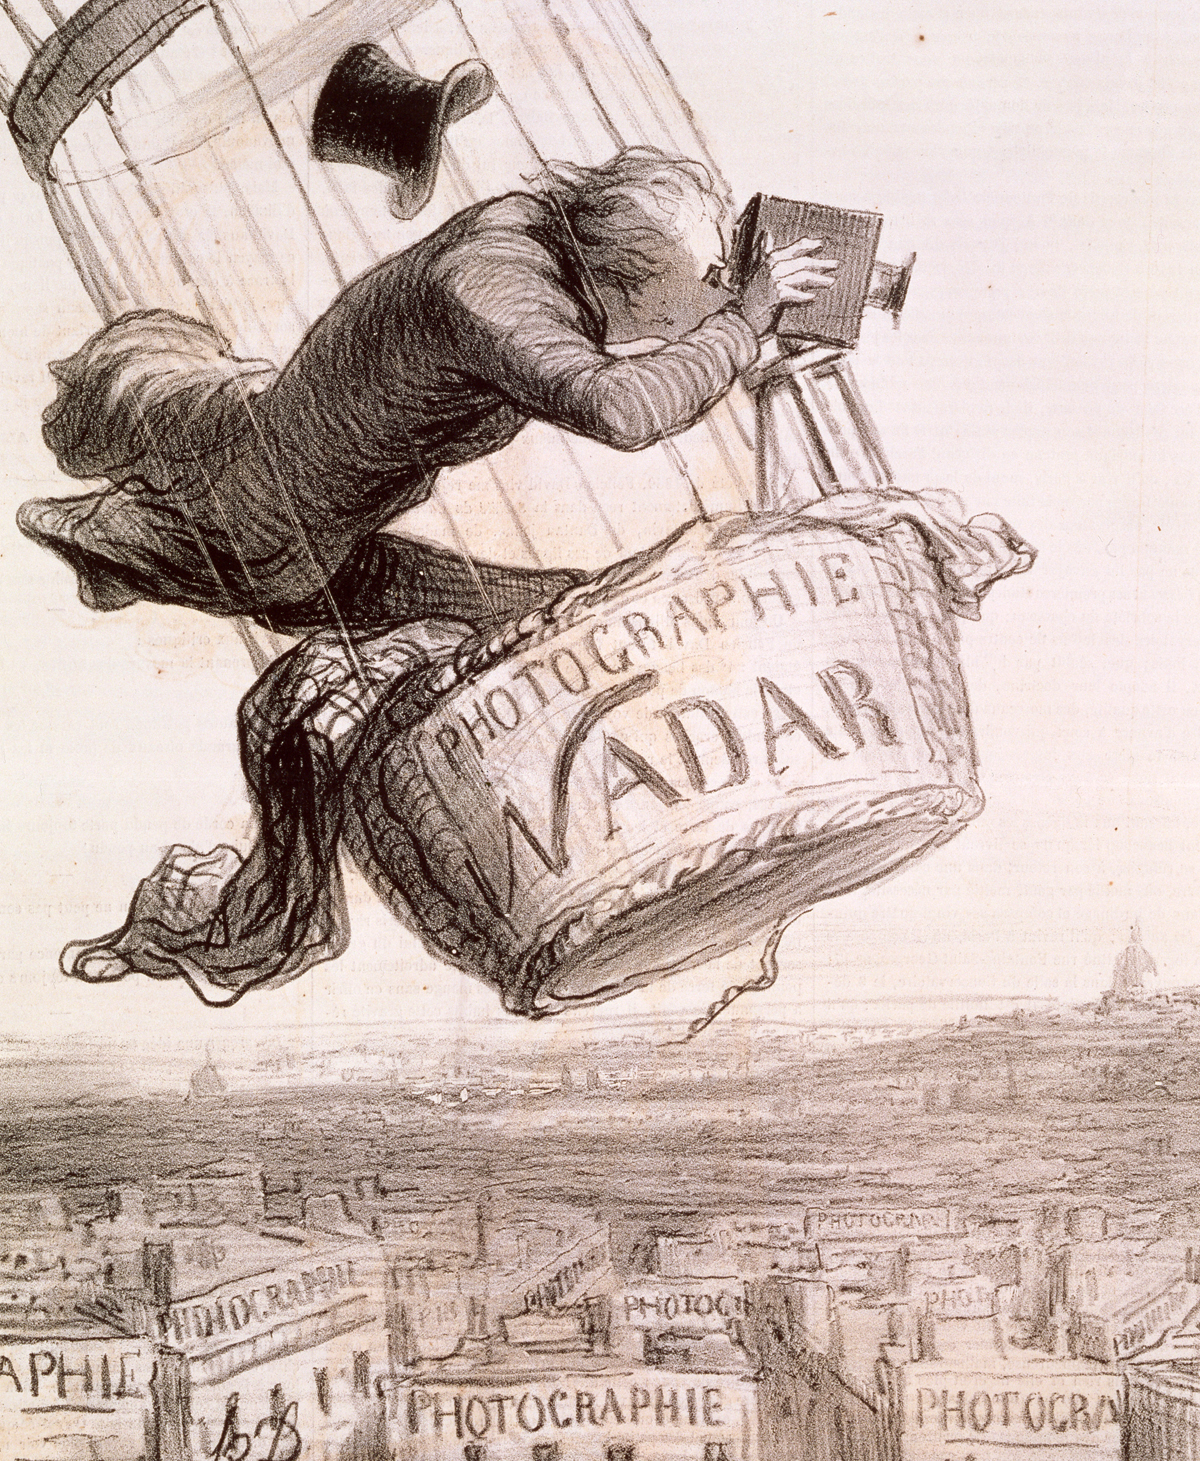 Nadar, Raising Photography to the Height of Art, by Honoré Daumier, 1862.